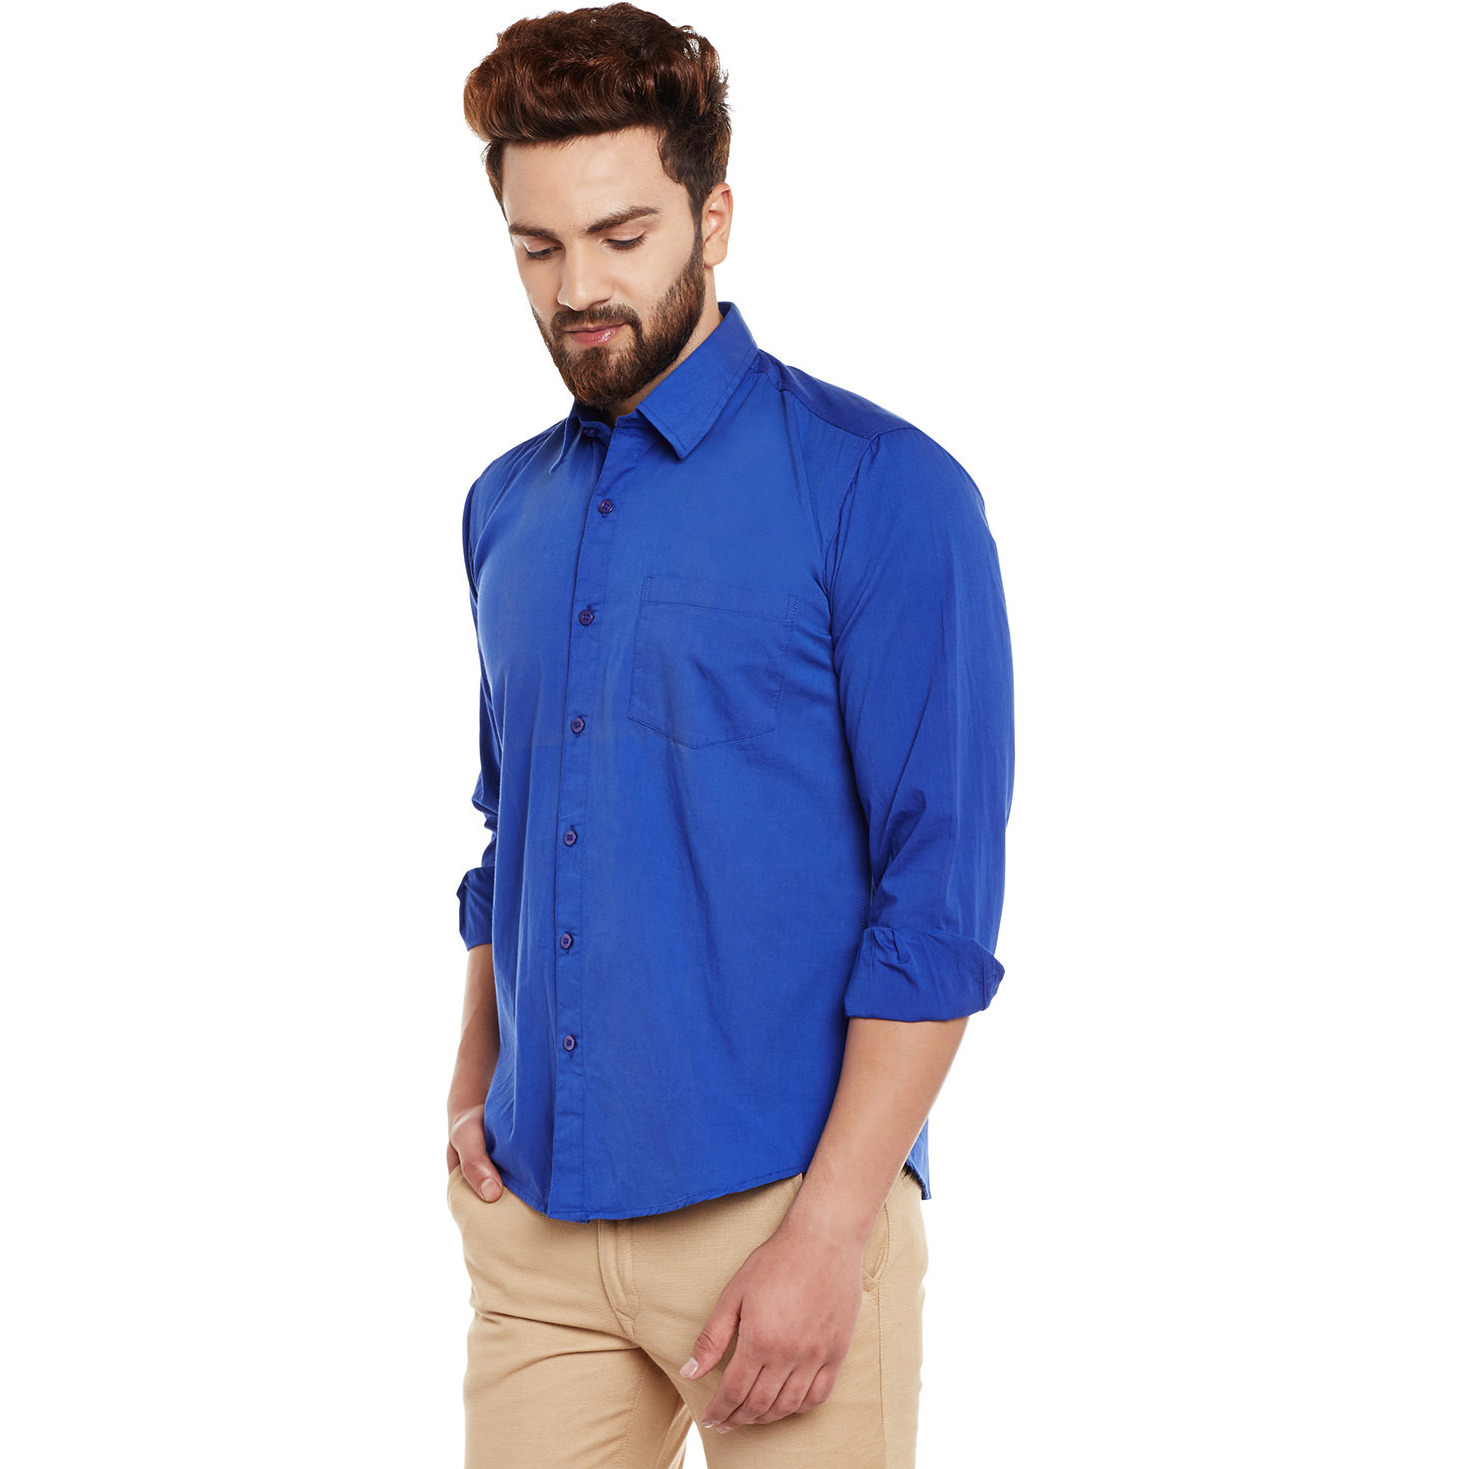 Mens Blue Cotton Shirt Regular Fit Full sleeve Classic Collar